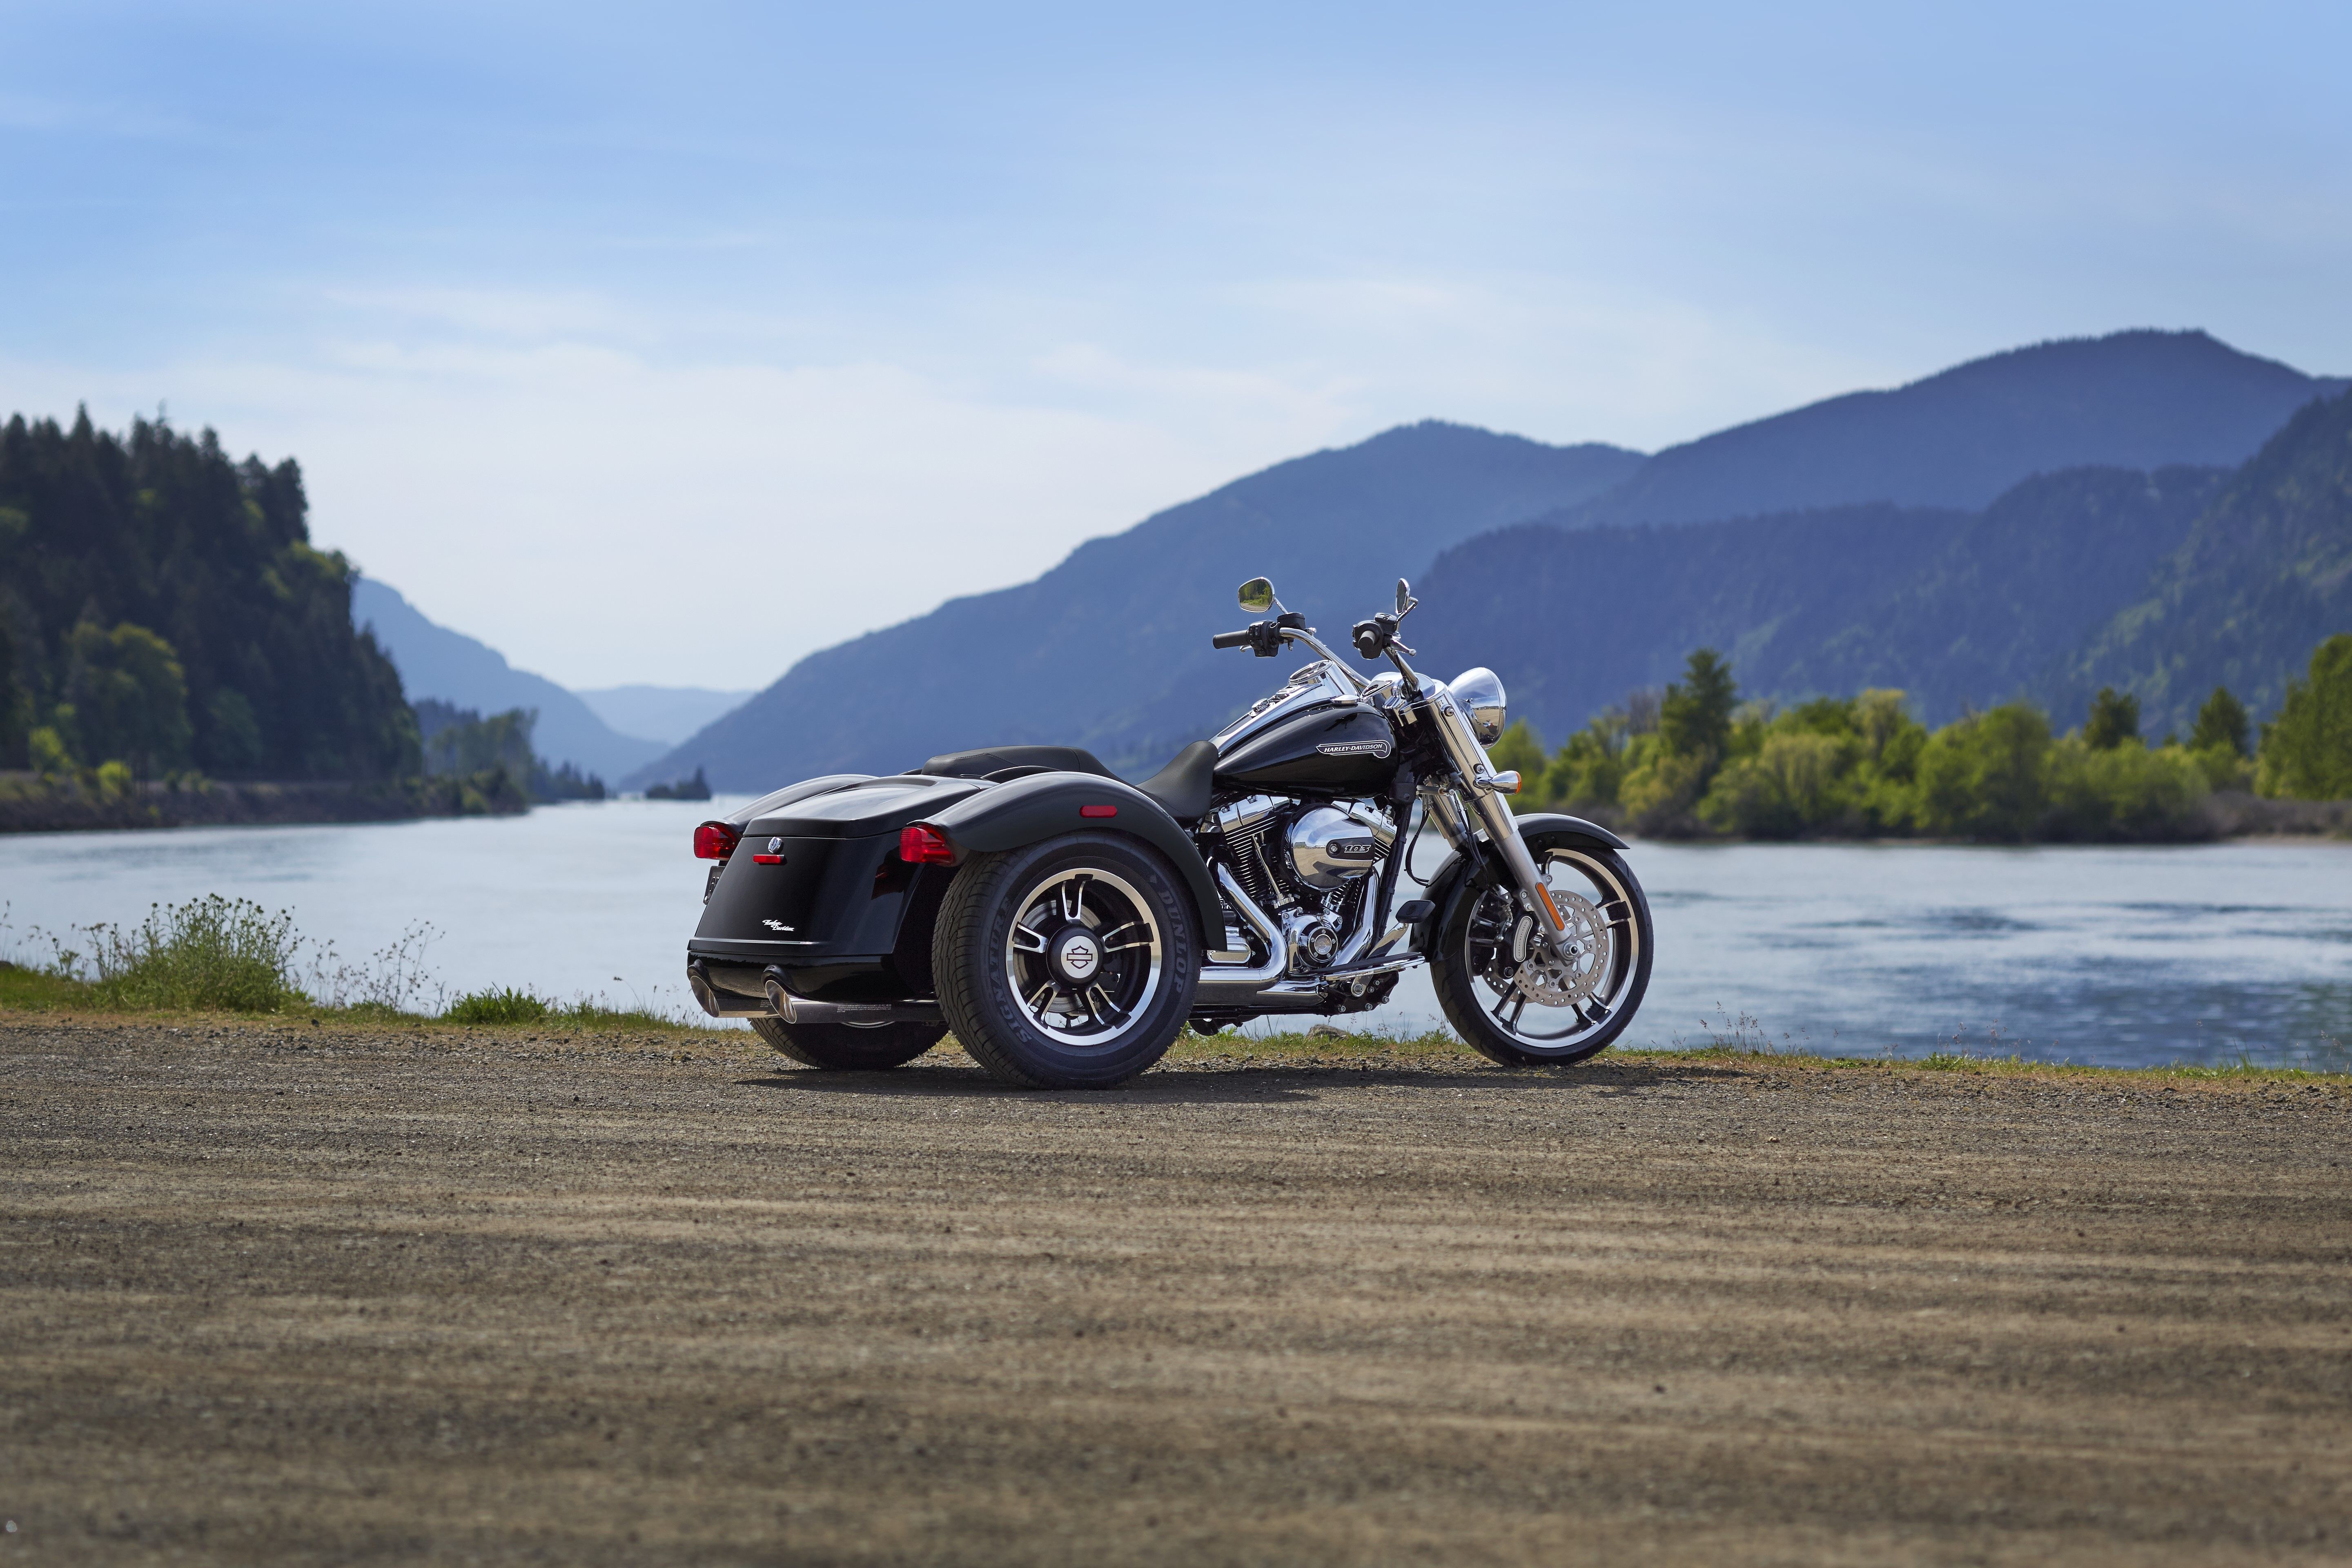 Hot rod-inspired style and a smaller, easy-handling size make the ...